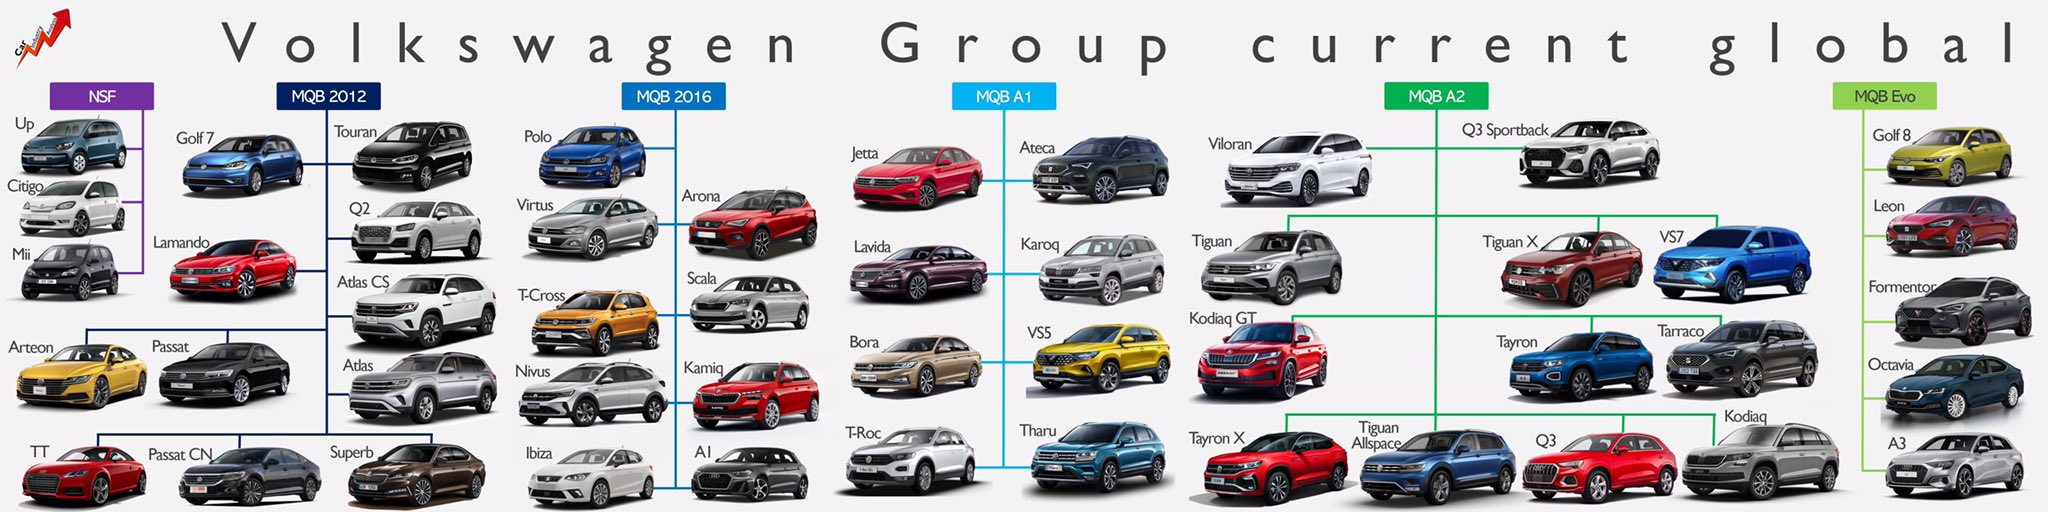 [Actualité] Groupe Volkswagen VAG - Page 32 EoBz8XuWMAM5osG?format=jpg&name=large